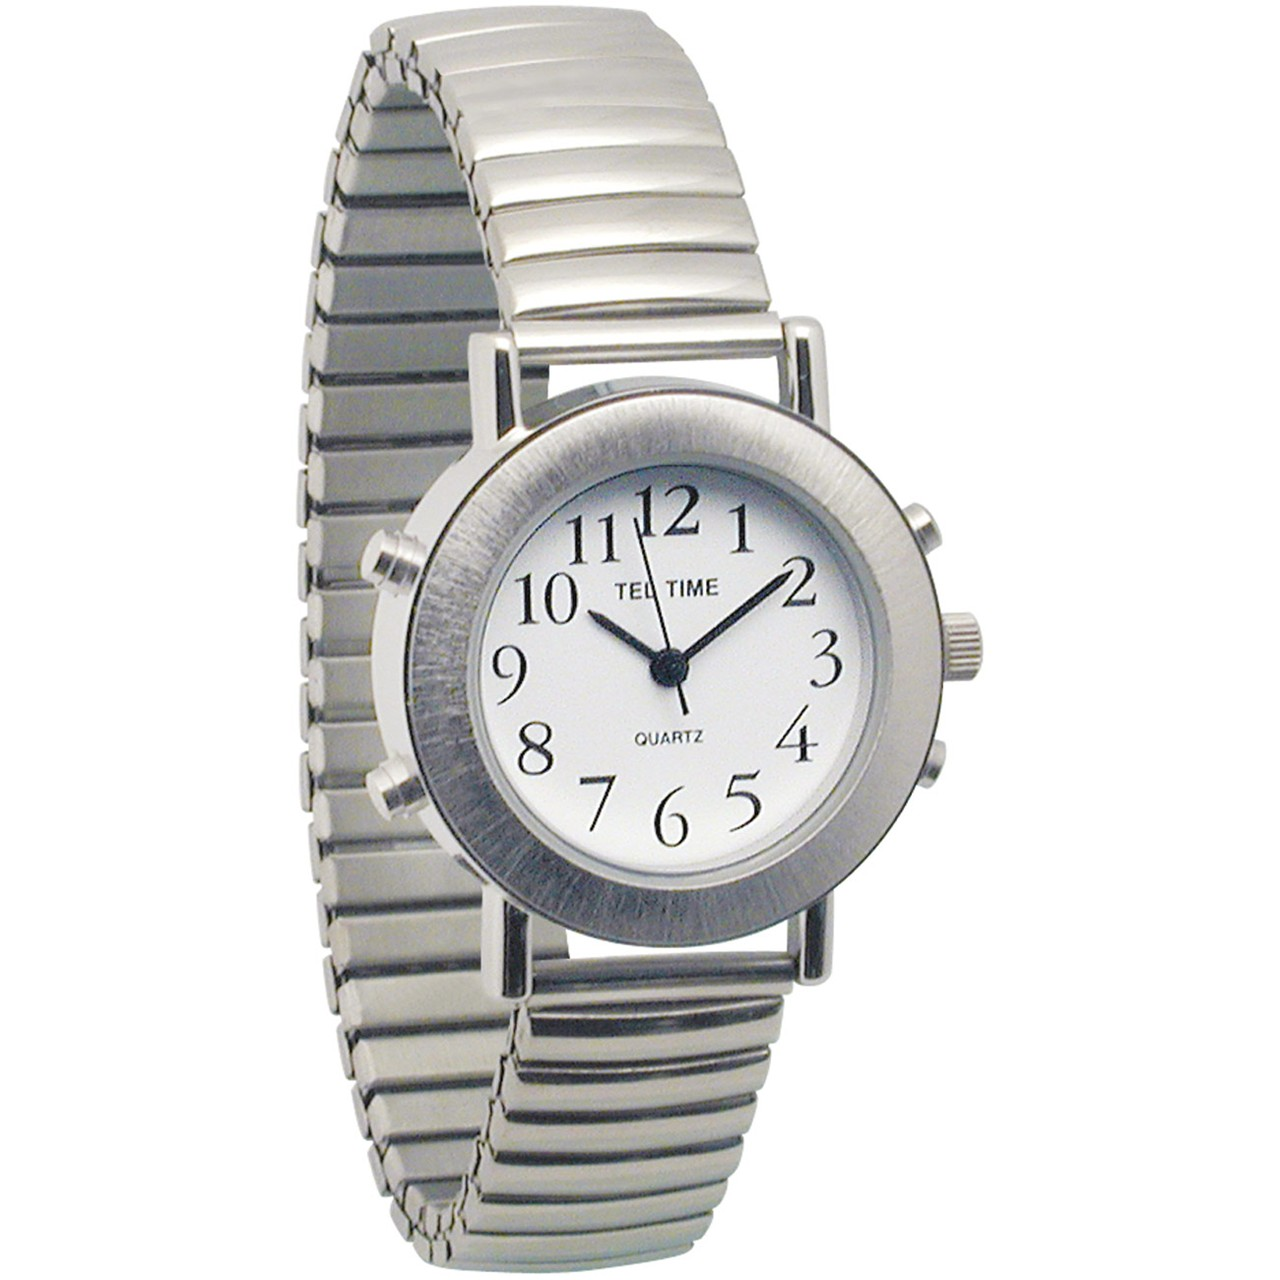 Maxiaids Ladies Tel-Time Chrome Talking Watch with White ...